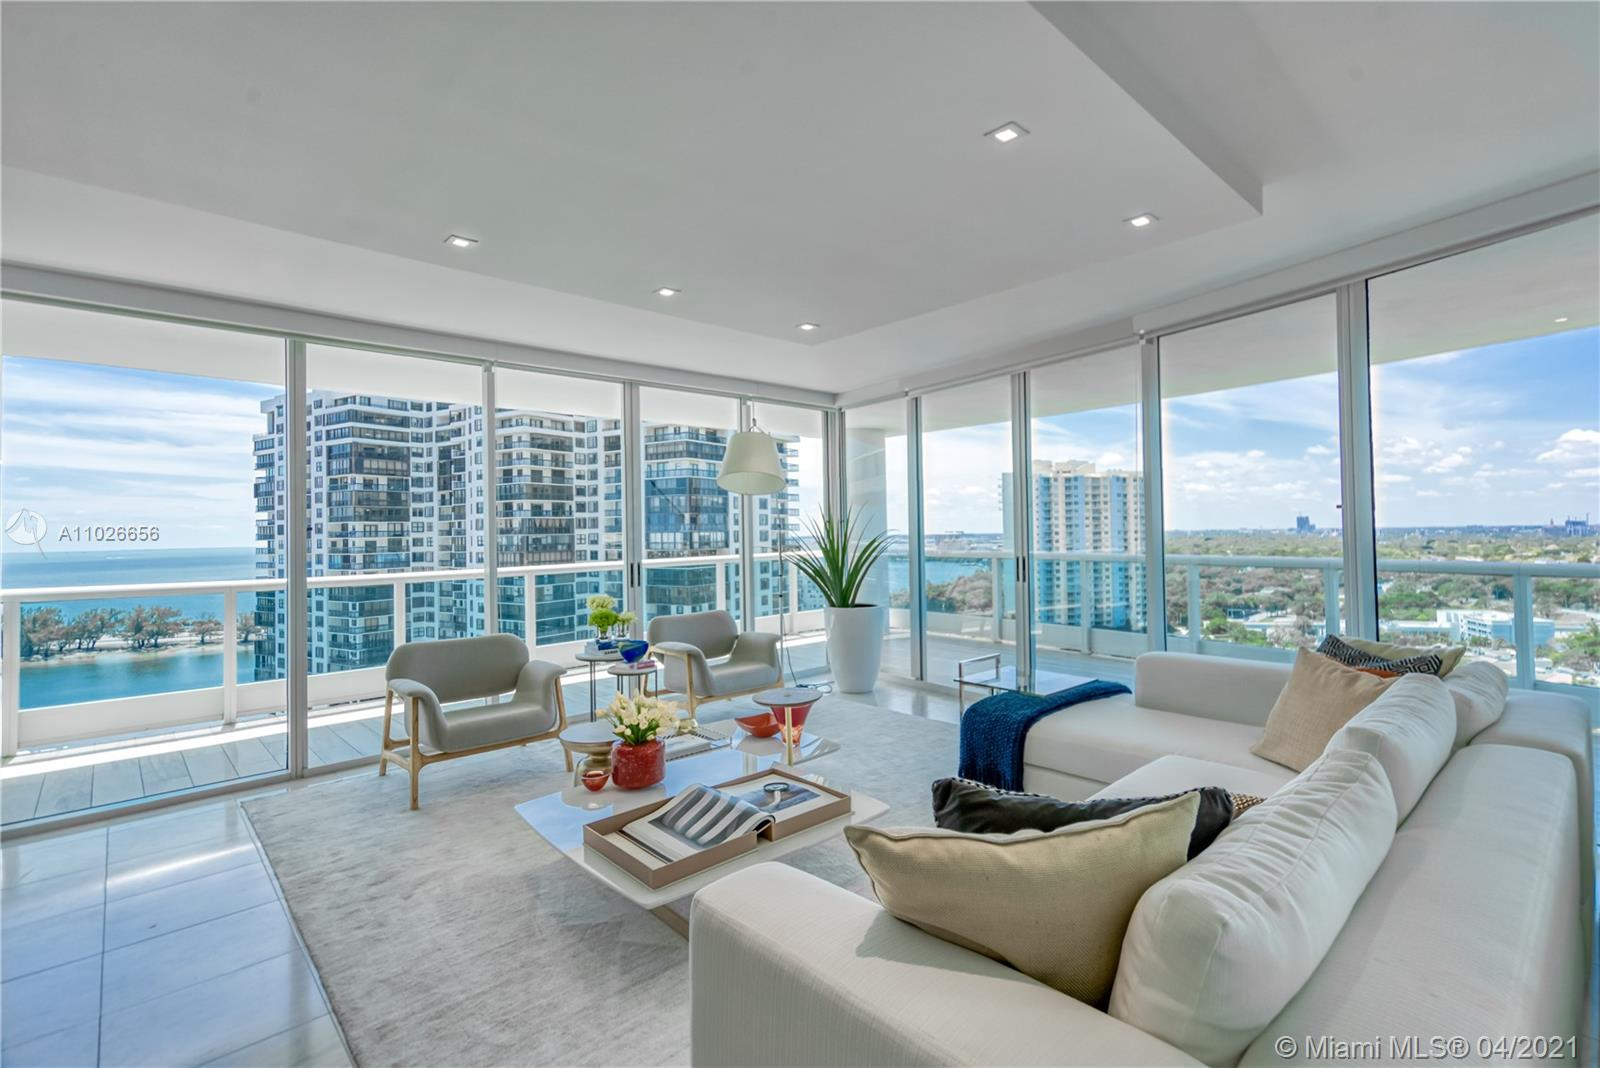 This stunning 3 Be/3Ba unit at prestigious Bristol Tower in Brickell offers 2,310 SF and will be sold completely furnished. The bright corner residence is completely renovated and offers stunning water and city views. This exquisite residence comes with an Italian Kitchen w/ island, Quartz countertops and Wolf &Subzero appliances. Other features include marble & hard-wood floors, spacious, wrap-around balconies, Italian doors, renovated bathrooms with shower and tub, Italian closets, lots of storage space and a separate laundry room. Ideally located close to the heart of Brickell, but outside of its busy core. Building amenities include 24-hour concierge and security, on-site convenience store/café, heated pool, social room, tennis courts, Jacuzzi, and a state-of-the-art fitness center.